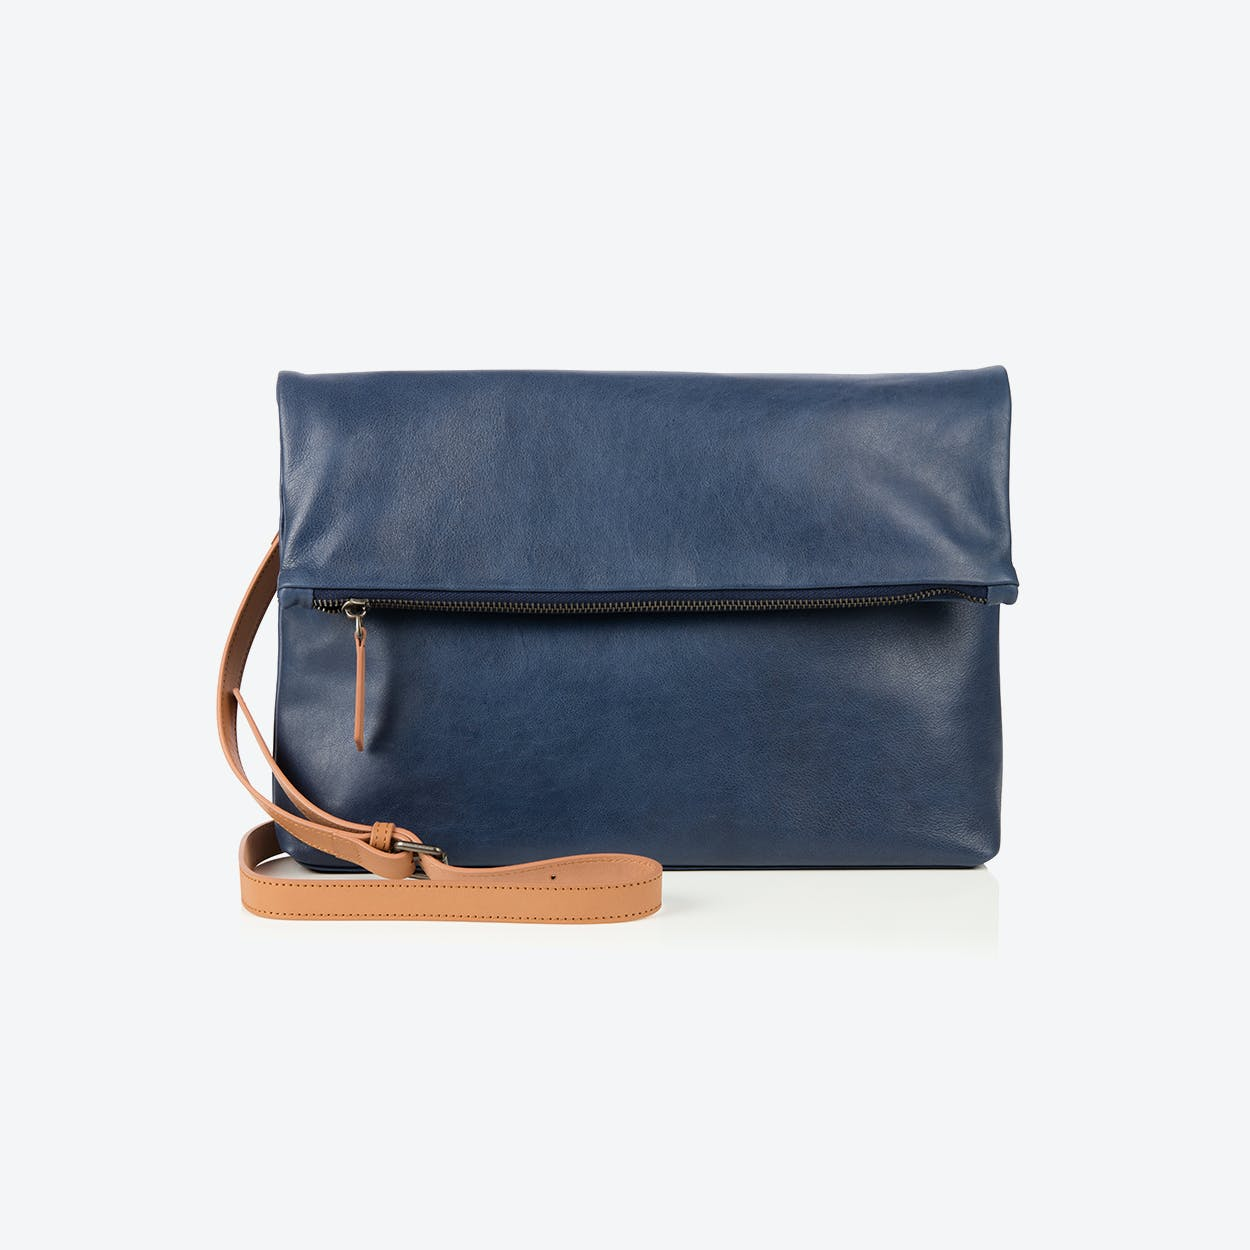 Rena foldover bag  in Blue